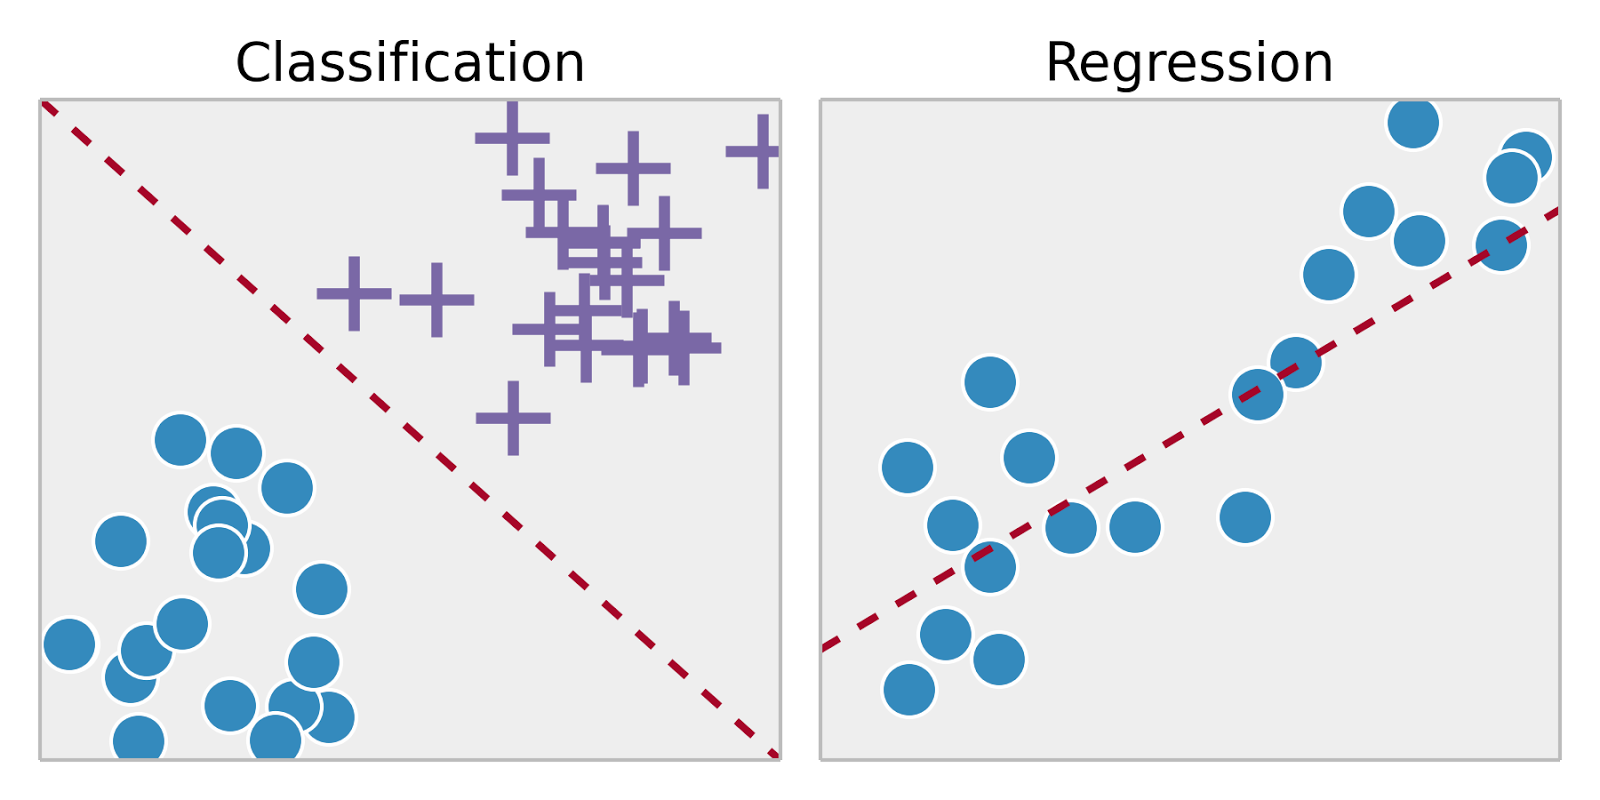 ep:labs:3._classification_vs_regression.png